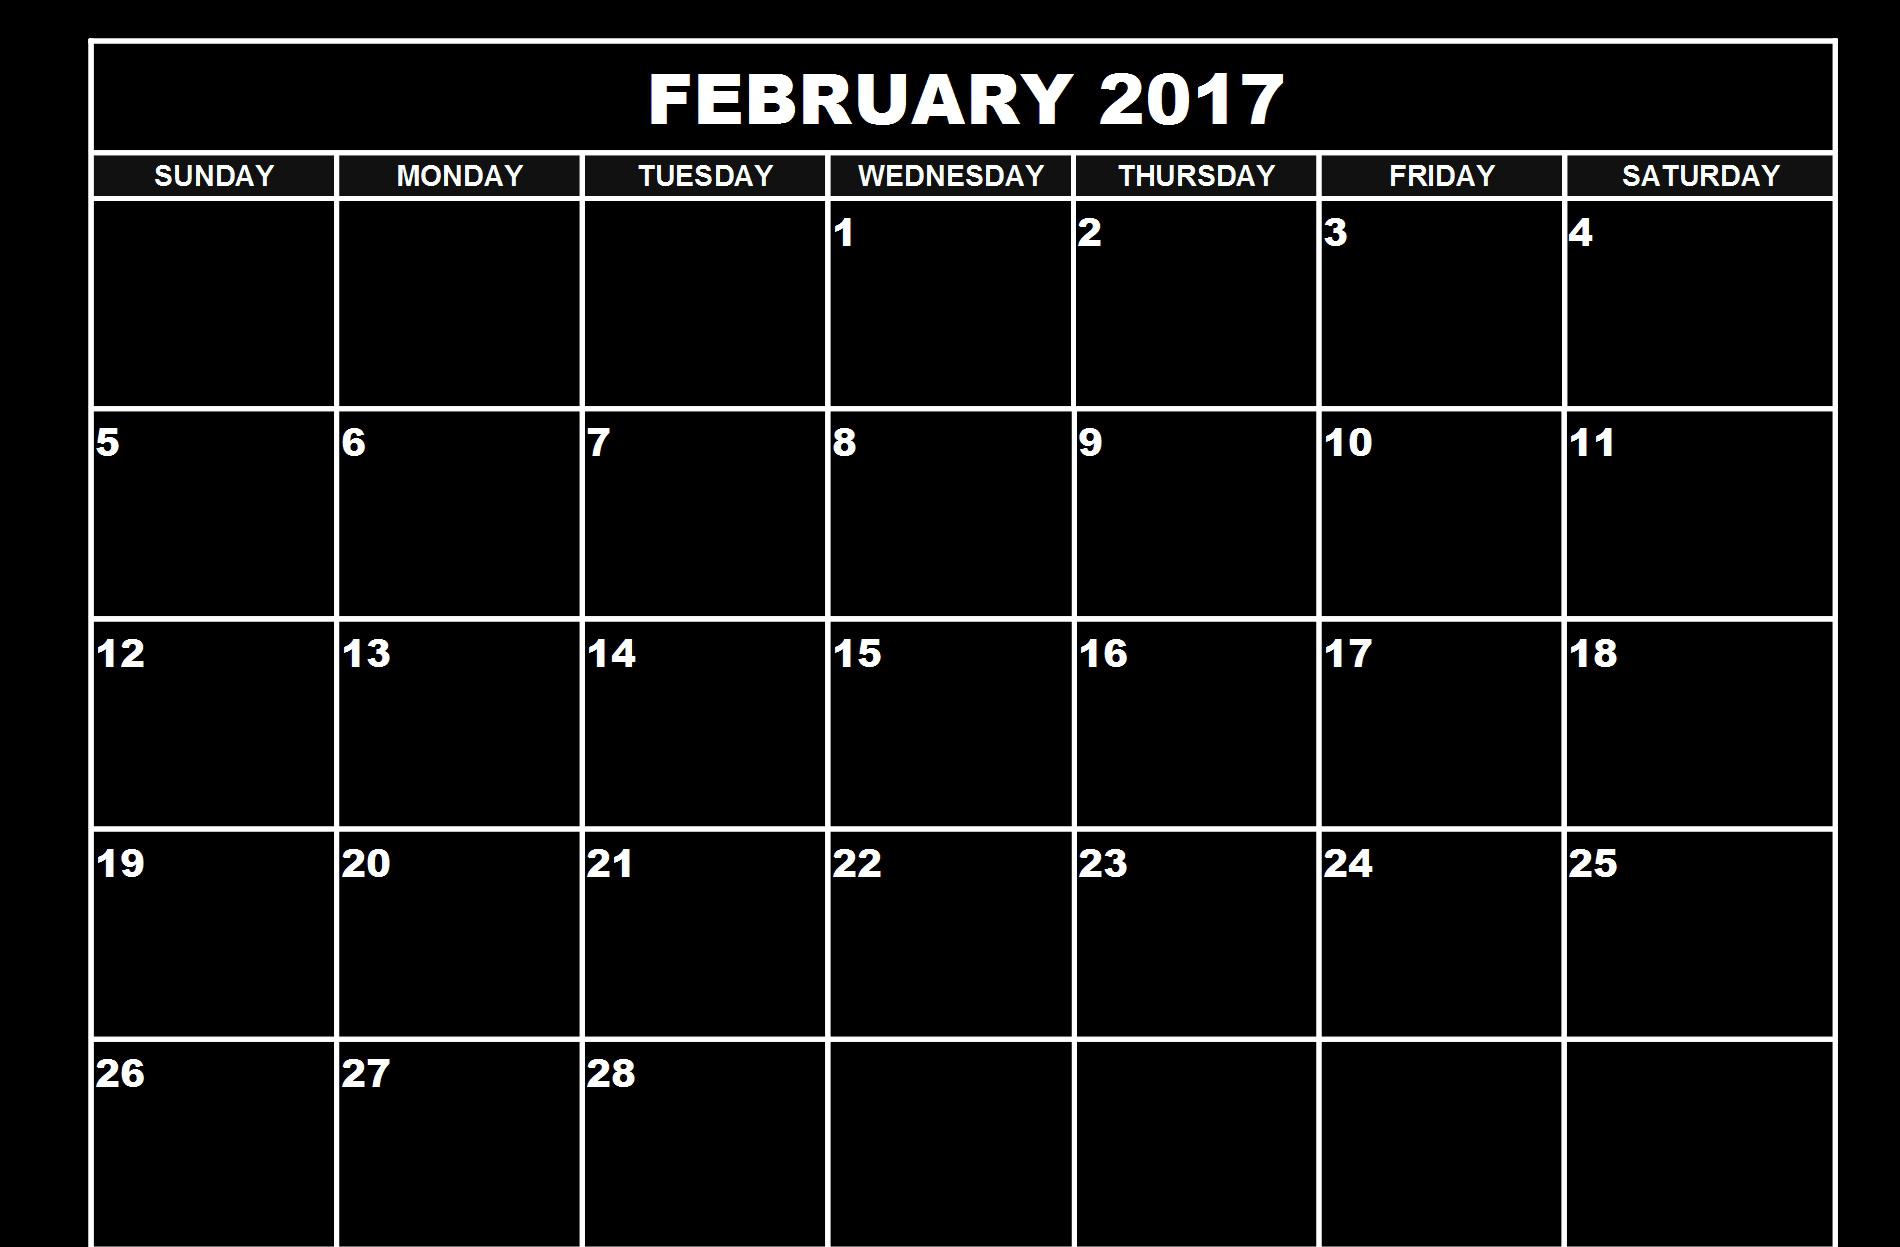 Download February 2017 calendar